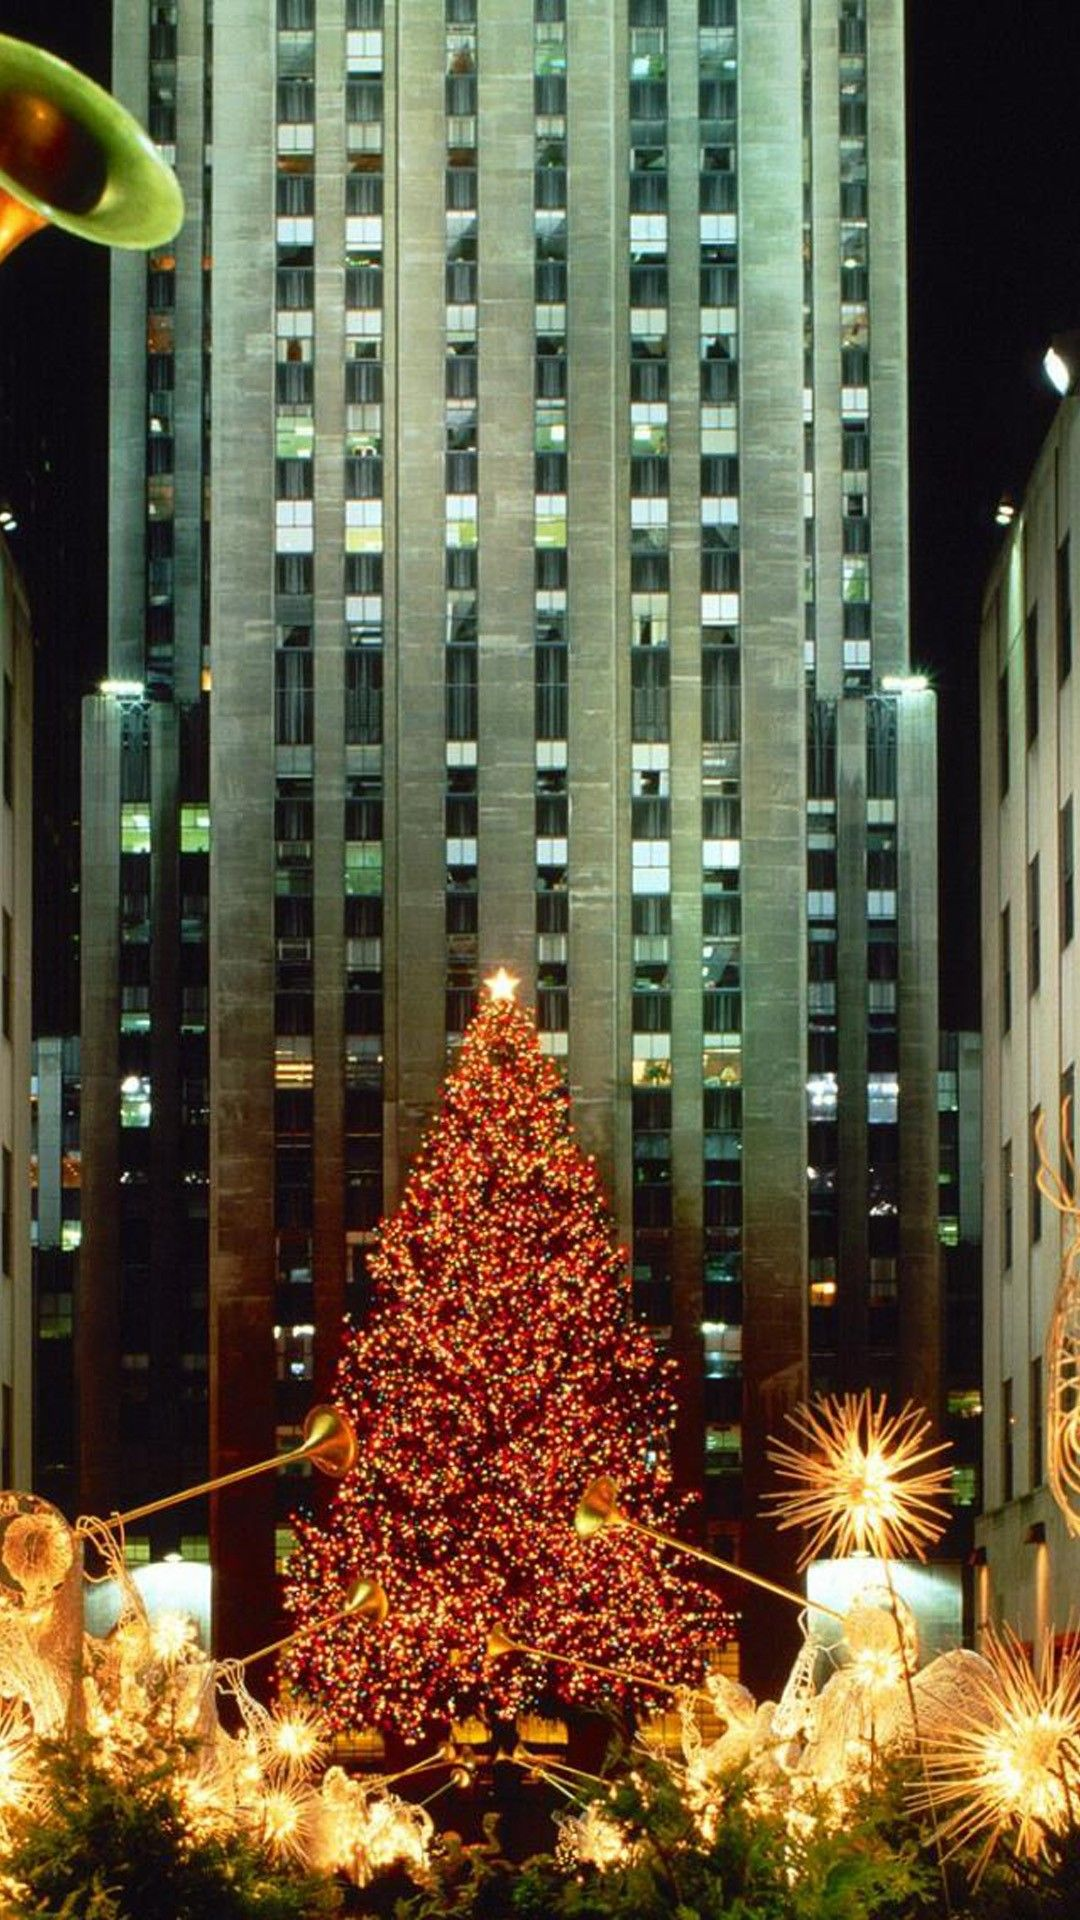 Nyc Christmas Tree Lighting 2019.Pin By Zenzone On Iphone Wallpapers In 2019 Christmas